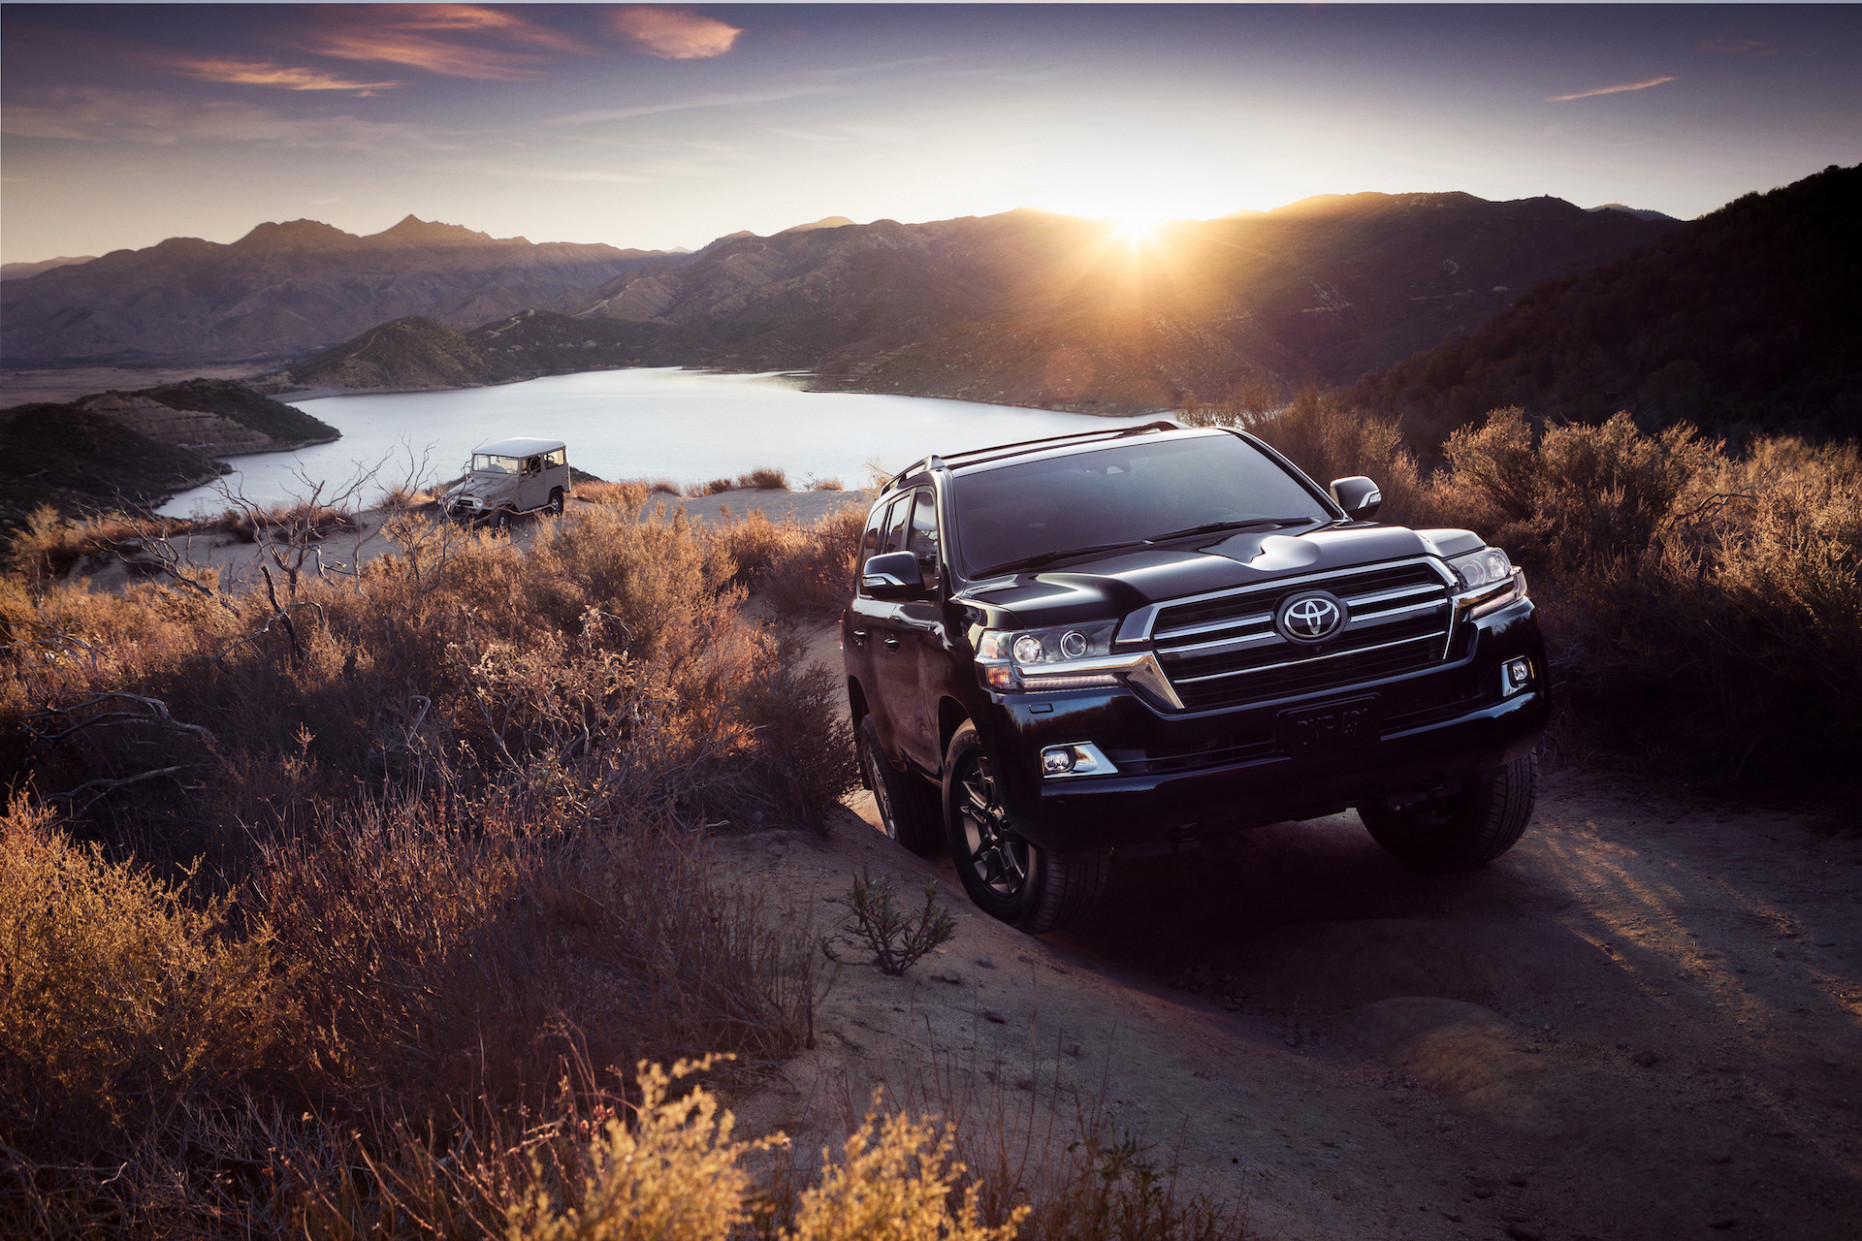 You need $6,6 to buy the 6 Toyota Land Cruiser Heritage Edition